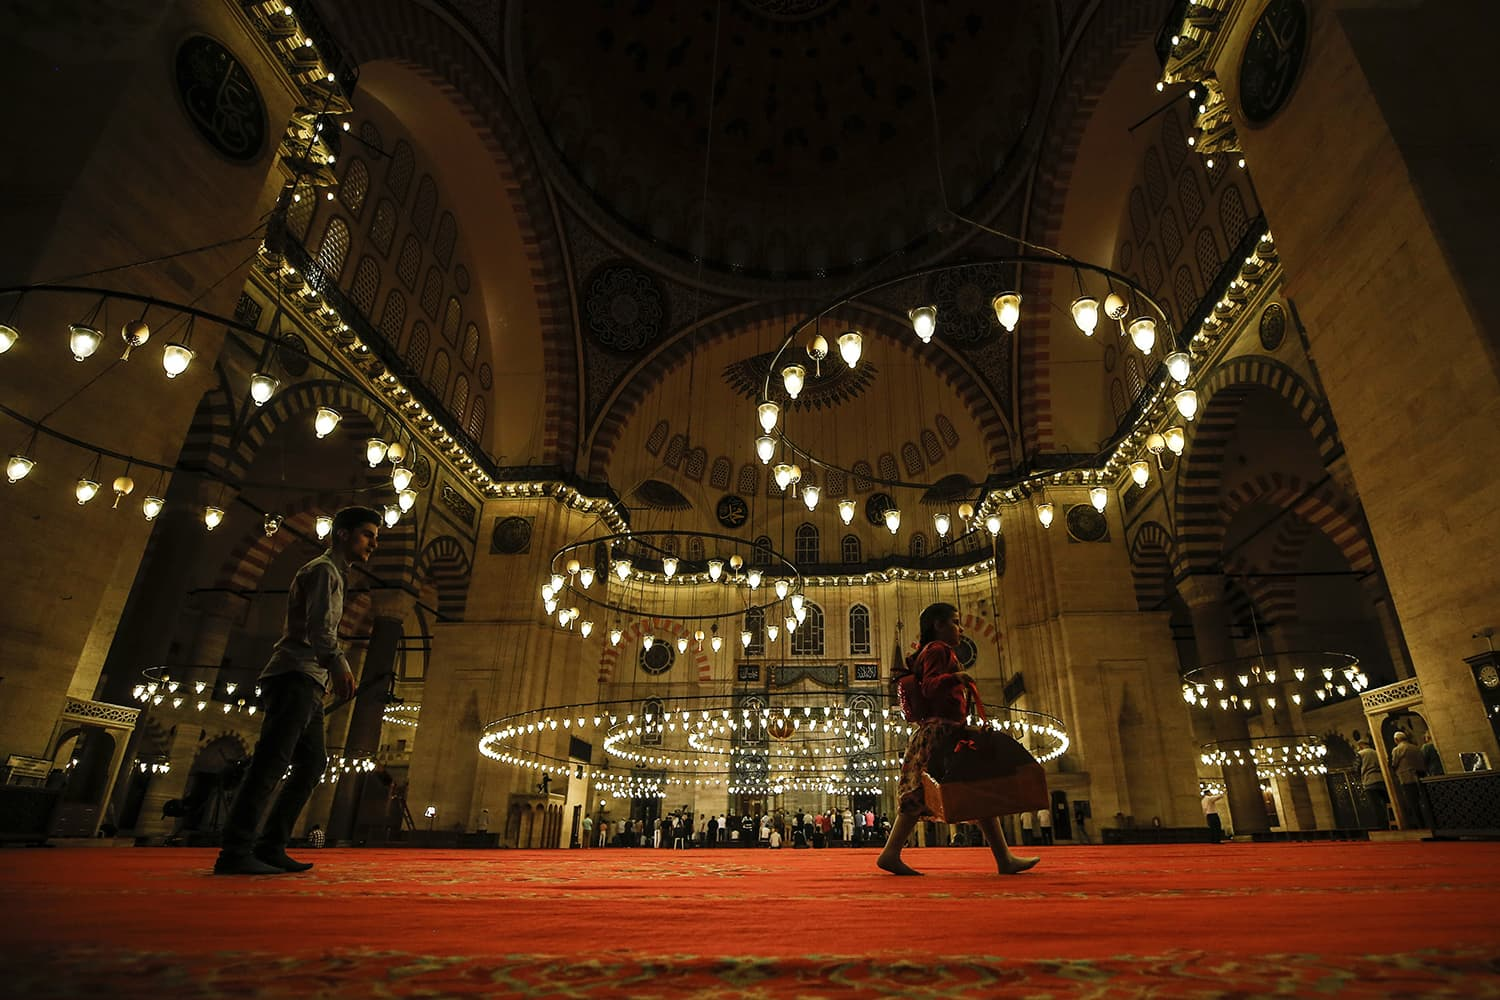 Turkey's Muslims arrive to offer prayers on the first day of Eidul Fitr at the the Suleymaniye Mosque in Istanbul. — AP